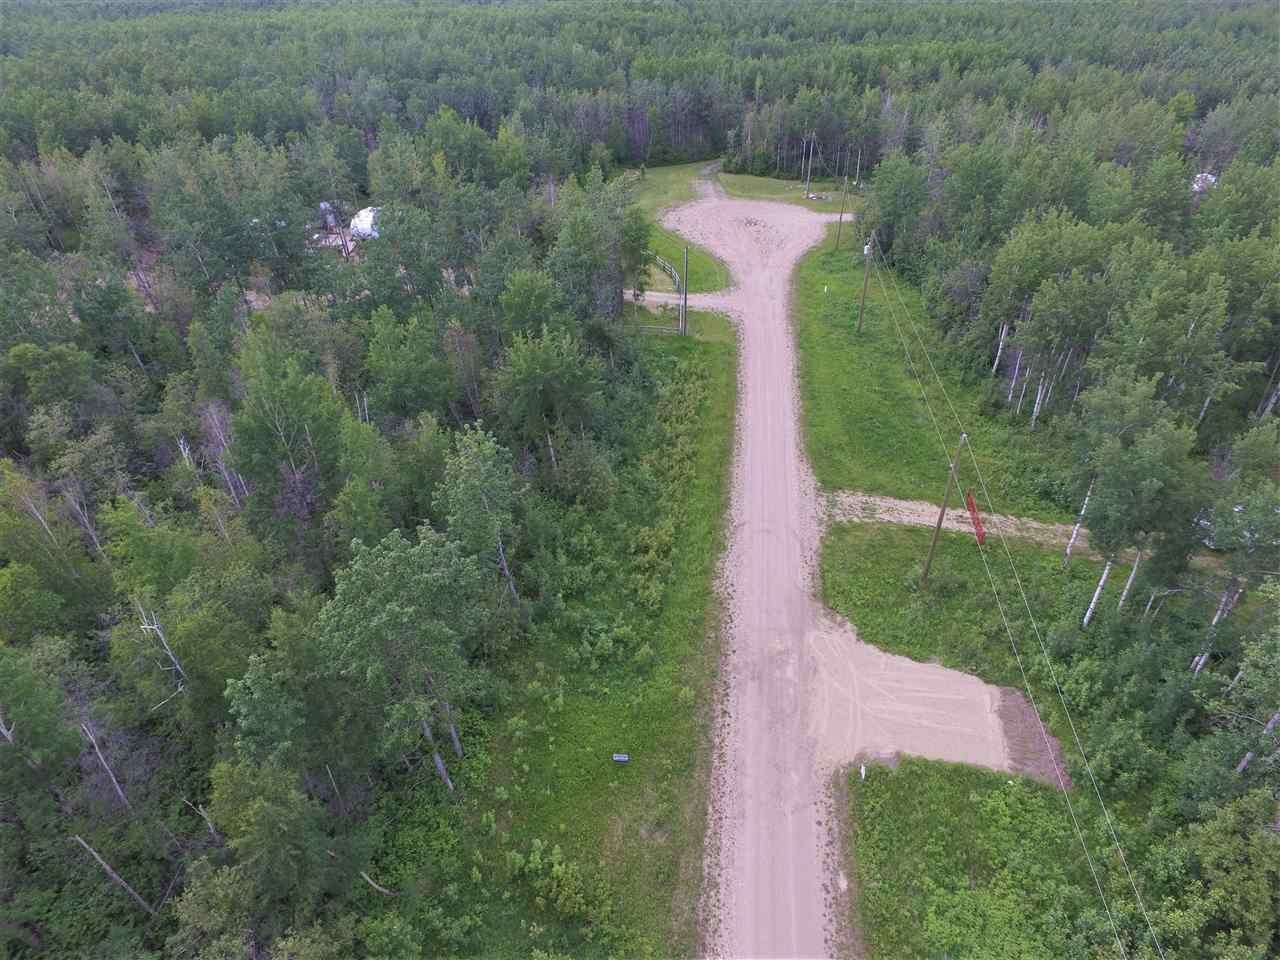 Photo 3: Photos: #11 13070 Twp Rd 464: Rural Wetaskiwin County Rural Land/Vacant Lot for sale : MLS®# E4195644